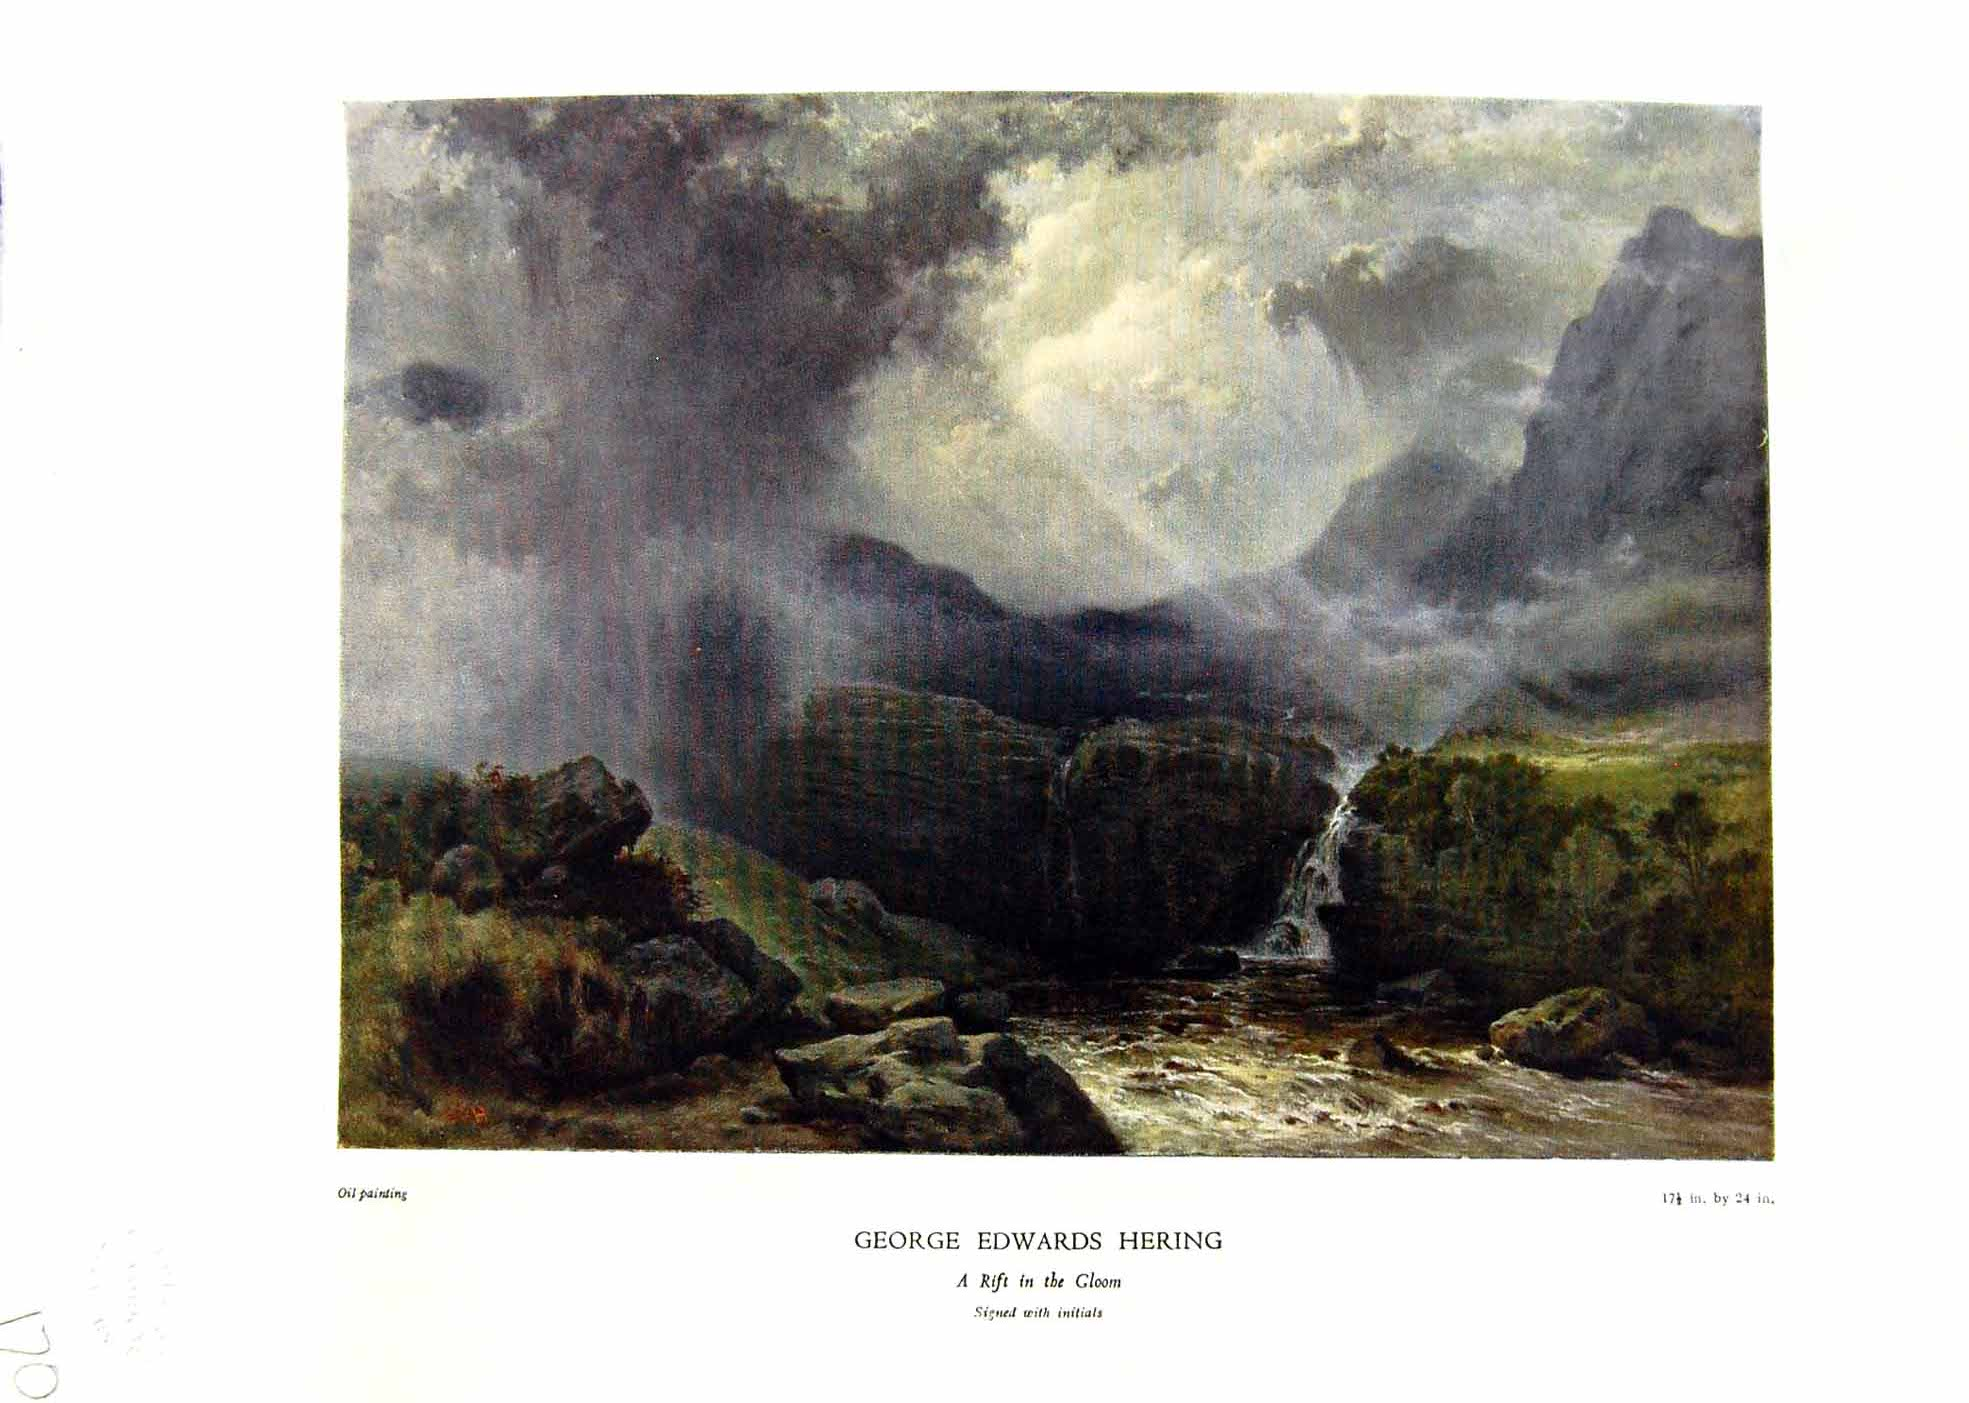 Antique-Print-NettlefGrundy-Oil-Painting-1935-Rift-Gloom-Stormy-Weathe-Rive